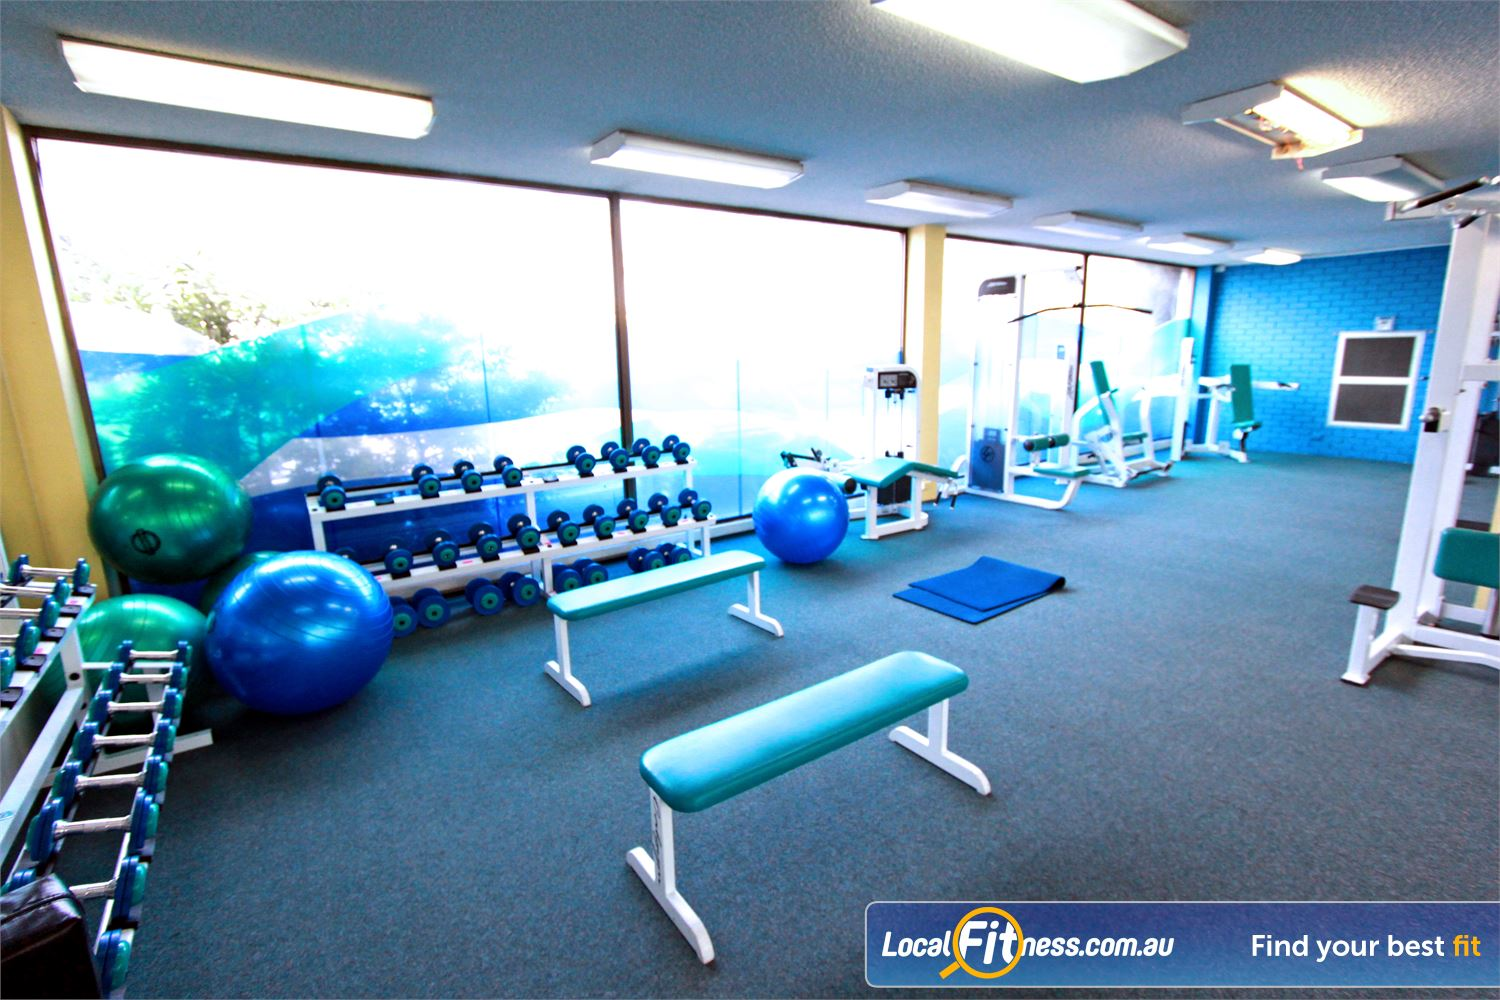 Fernwood Fitness Near Lurnea We provide the right fitness and weights to help women lose weight.